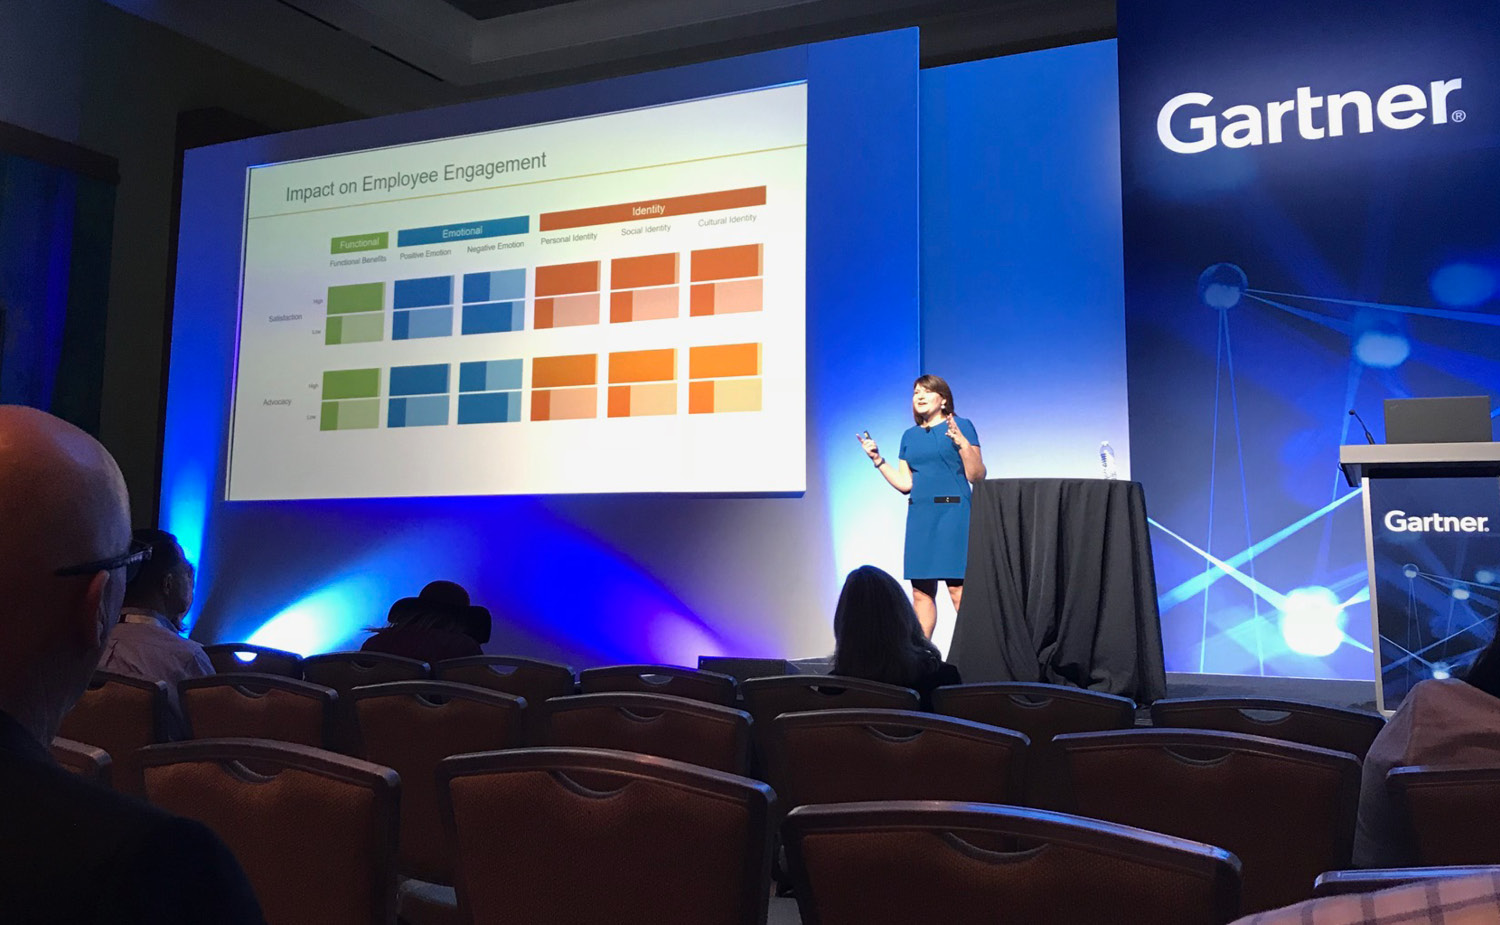 Gartner ReimagineHR conference speaking session on employee engagement research